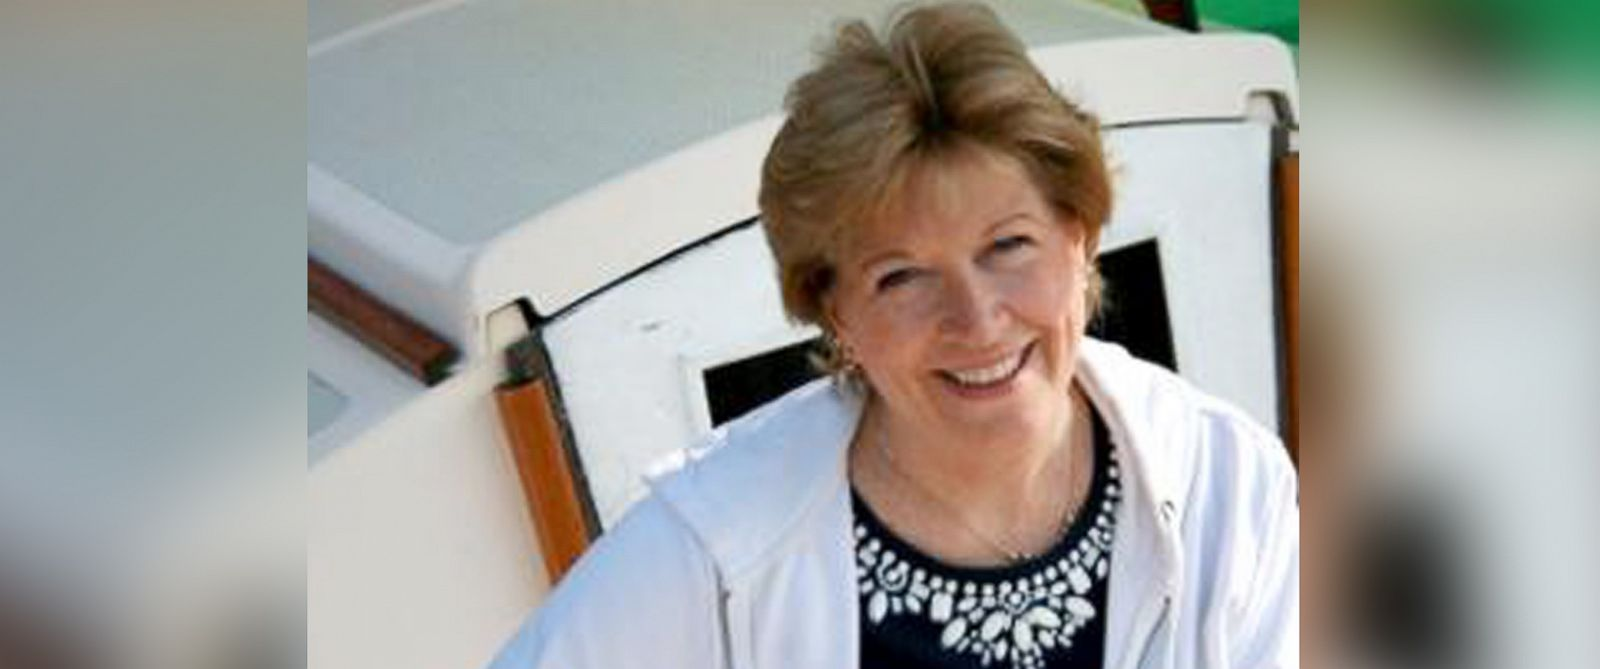 PHOTO: Vicki Gardner, seen in an undated family photo, was injured in a shooting in Virginia, Aug. 26, 2015.